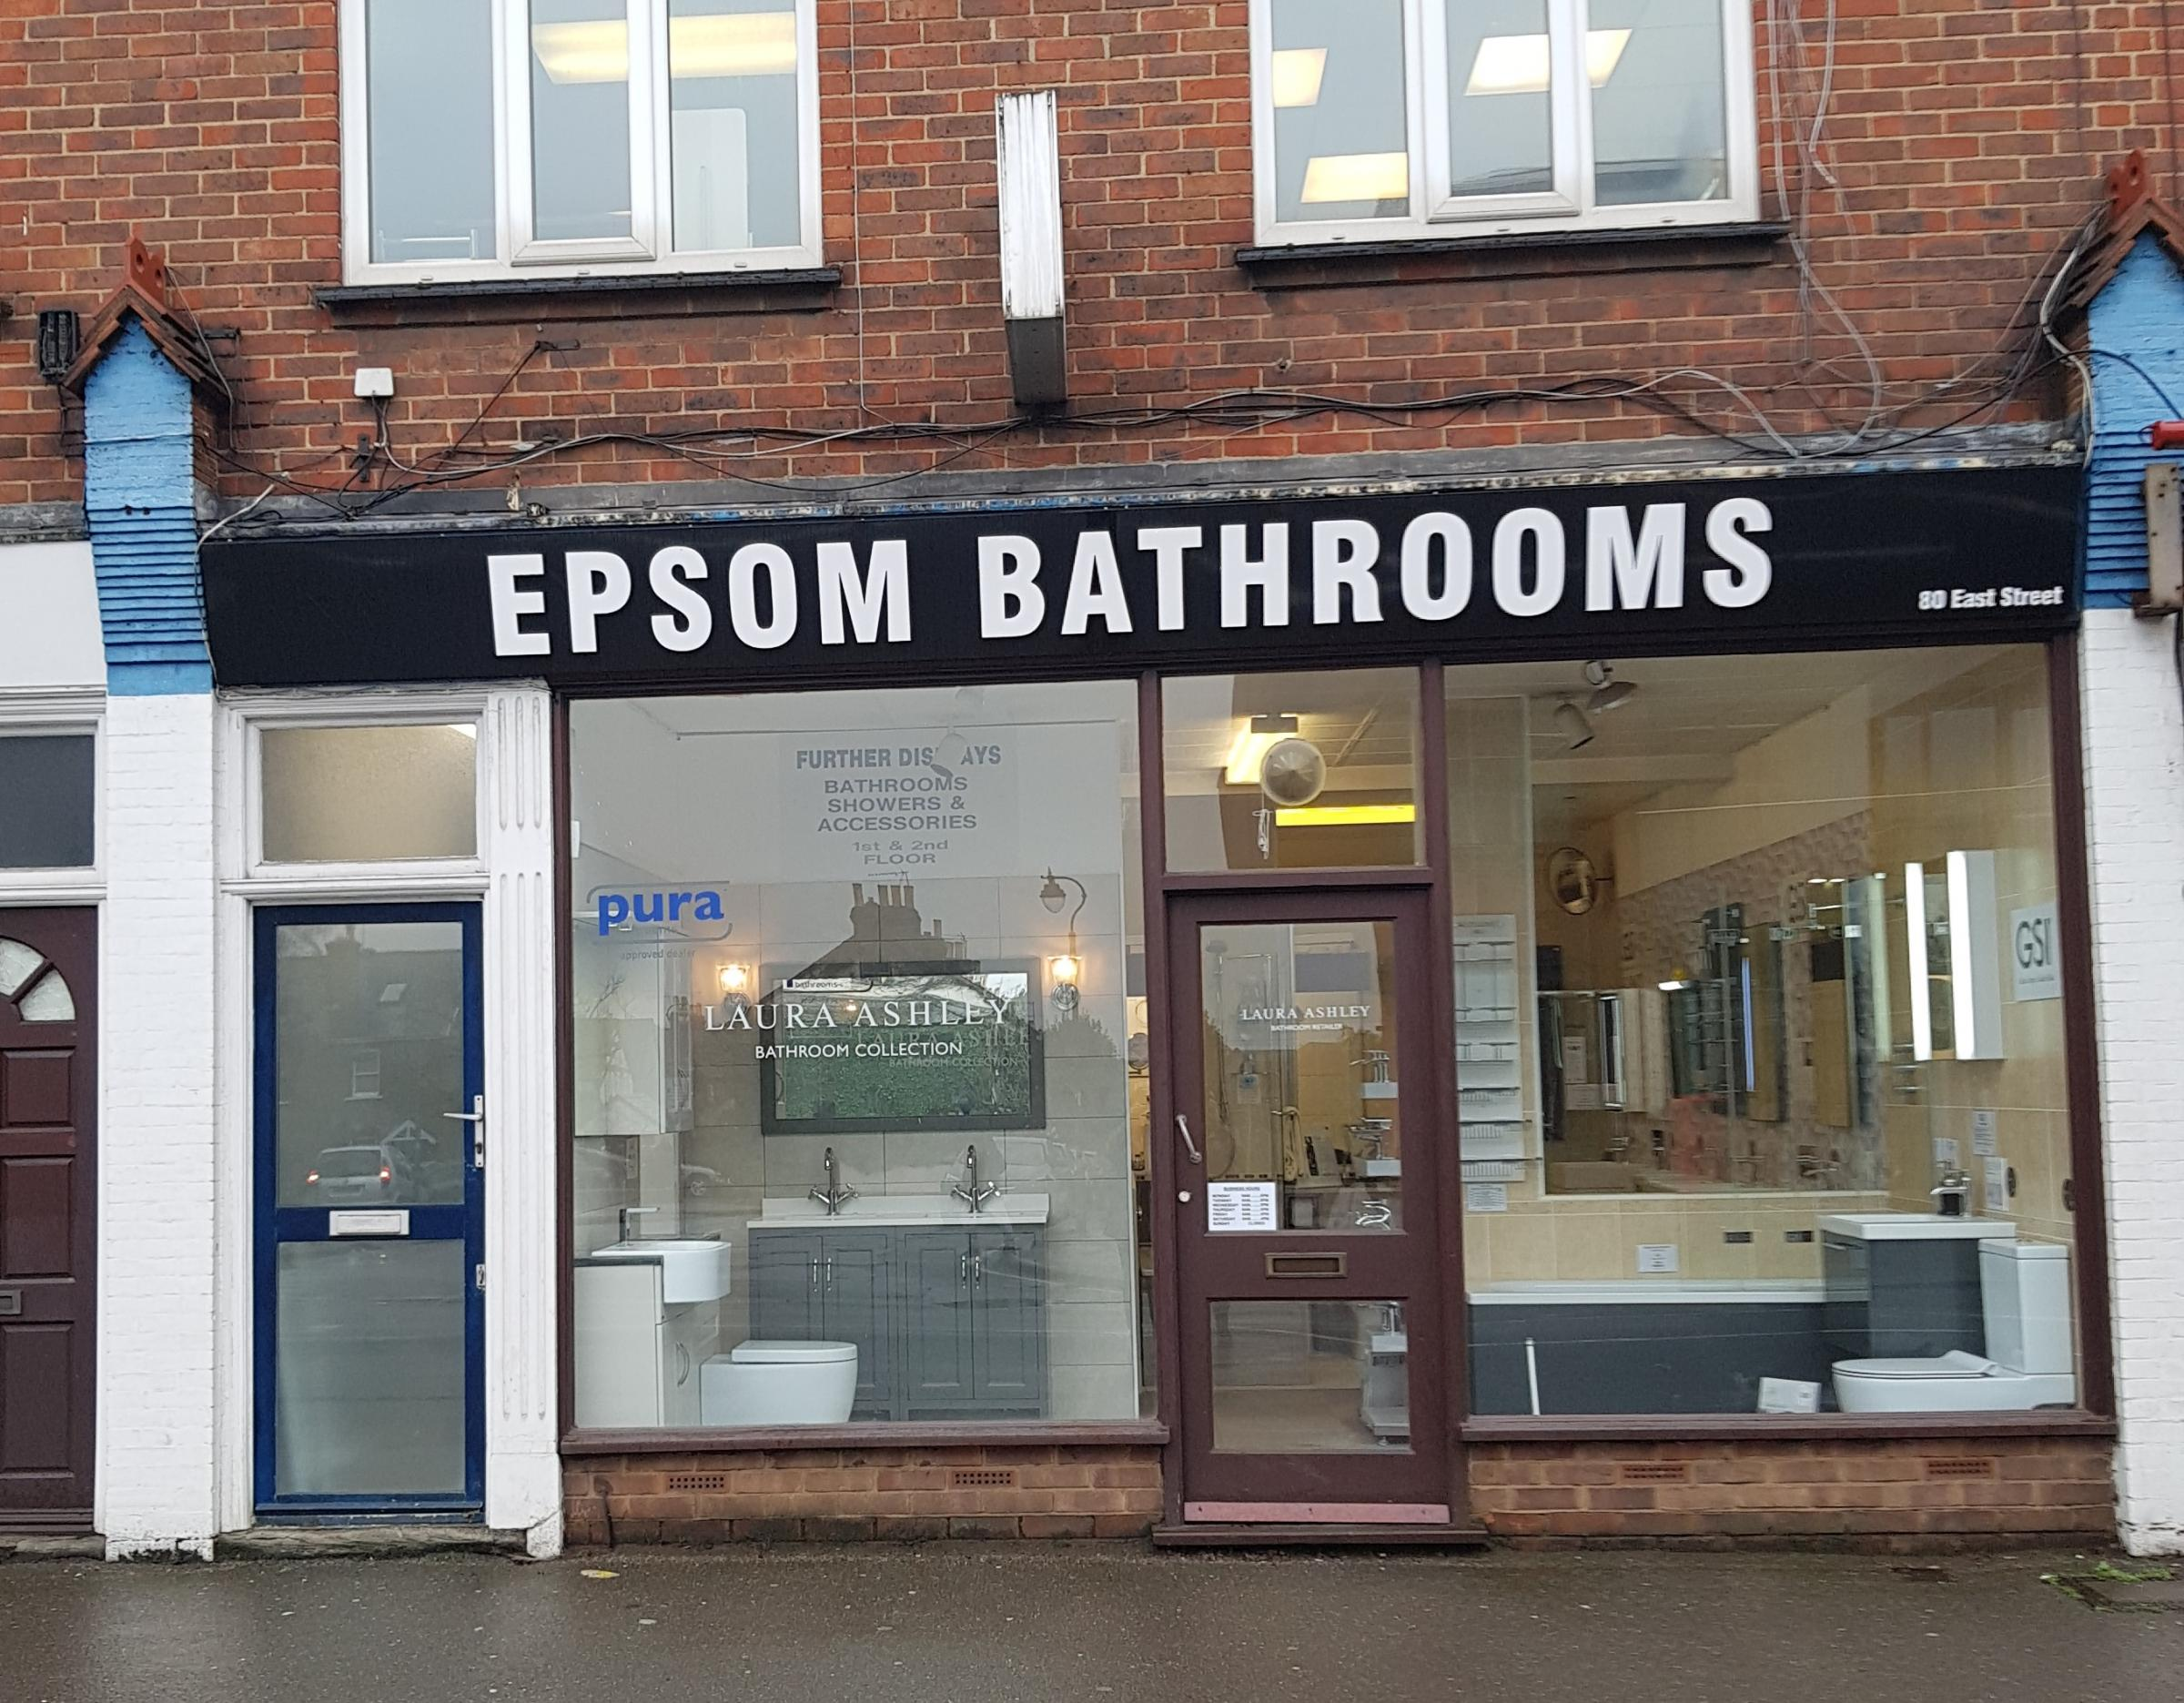 A unit located next to Epsom Bathrooms could be converted into flats